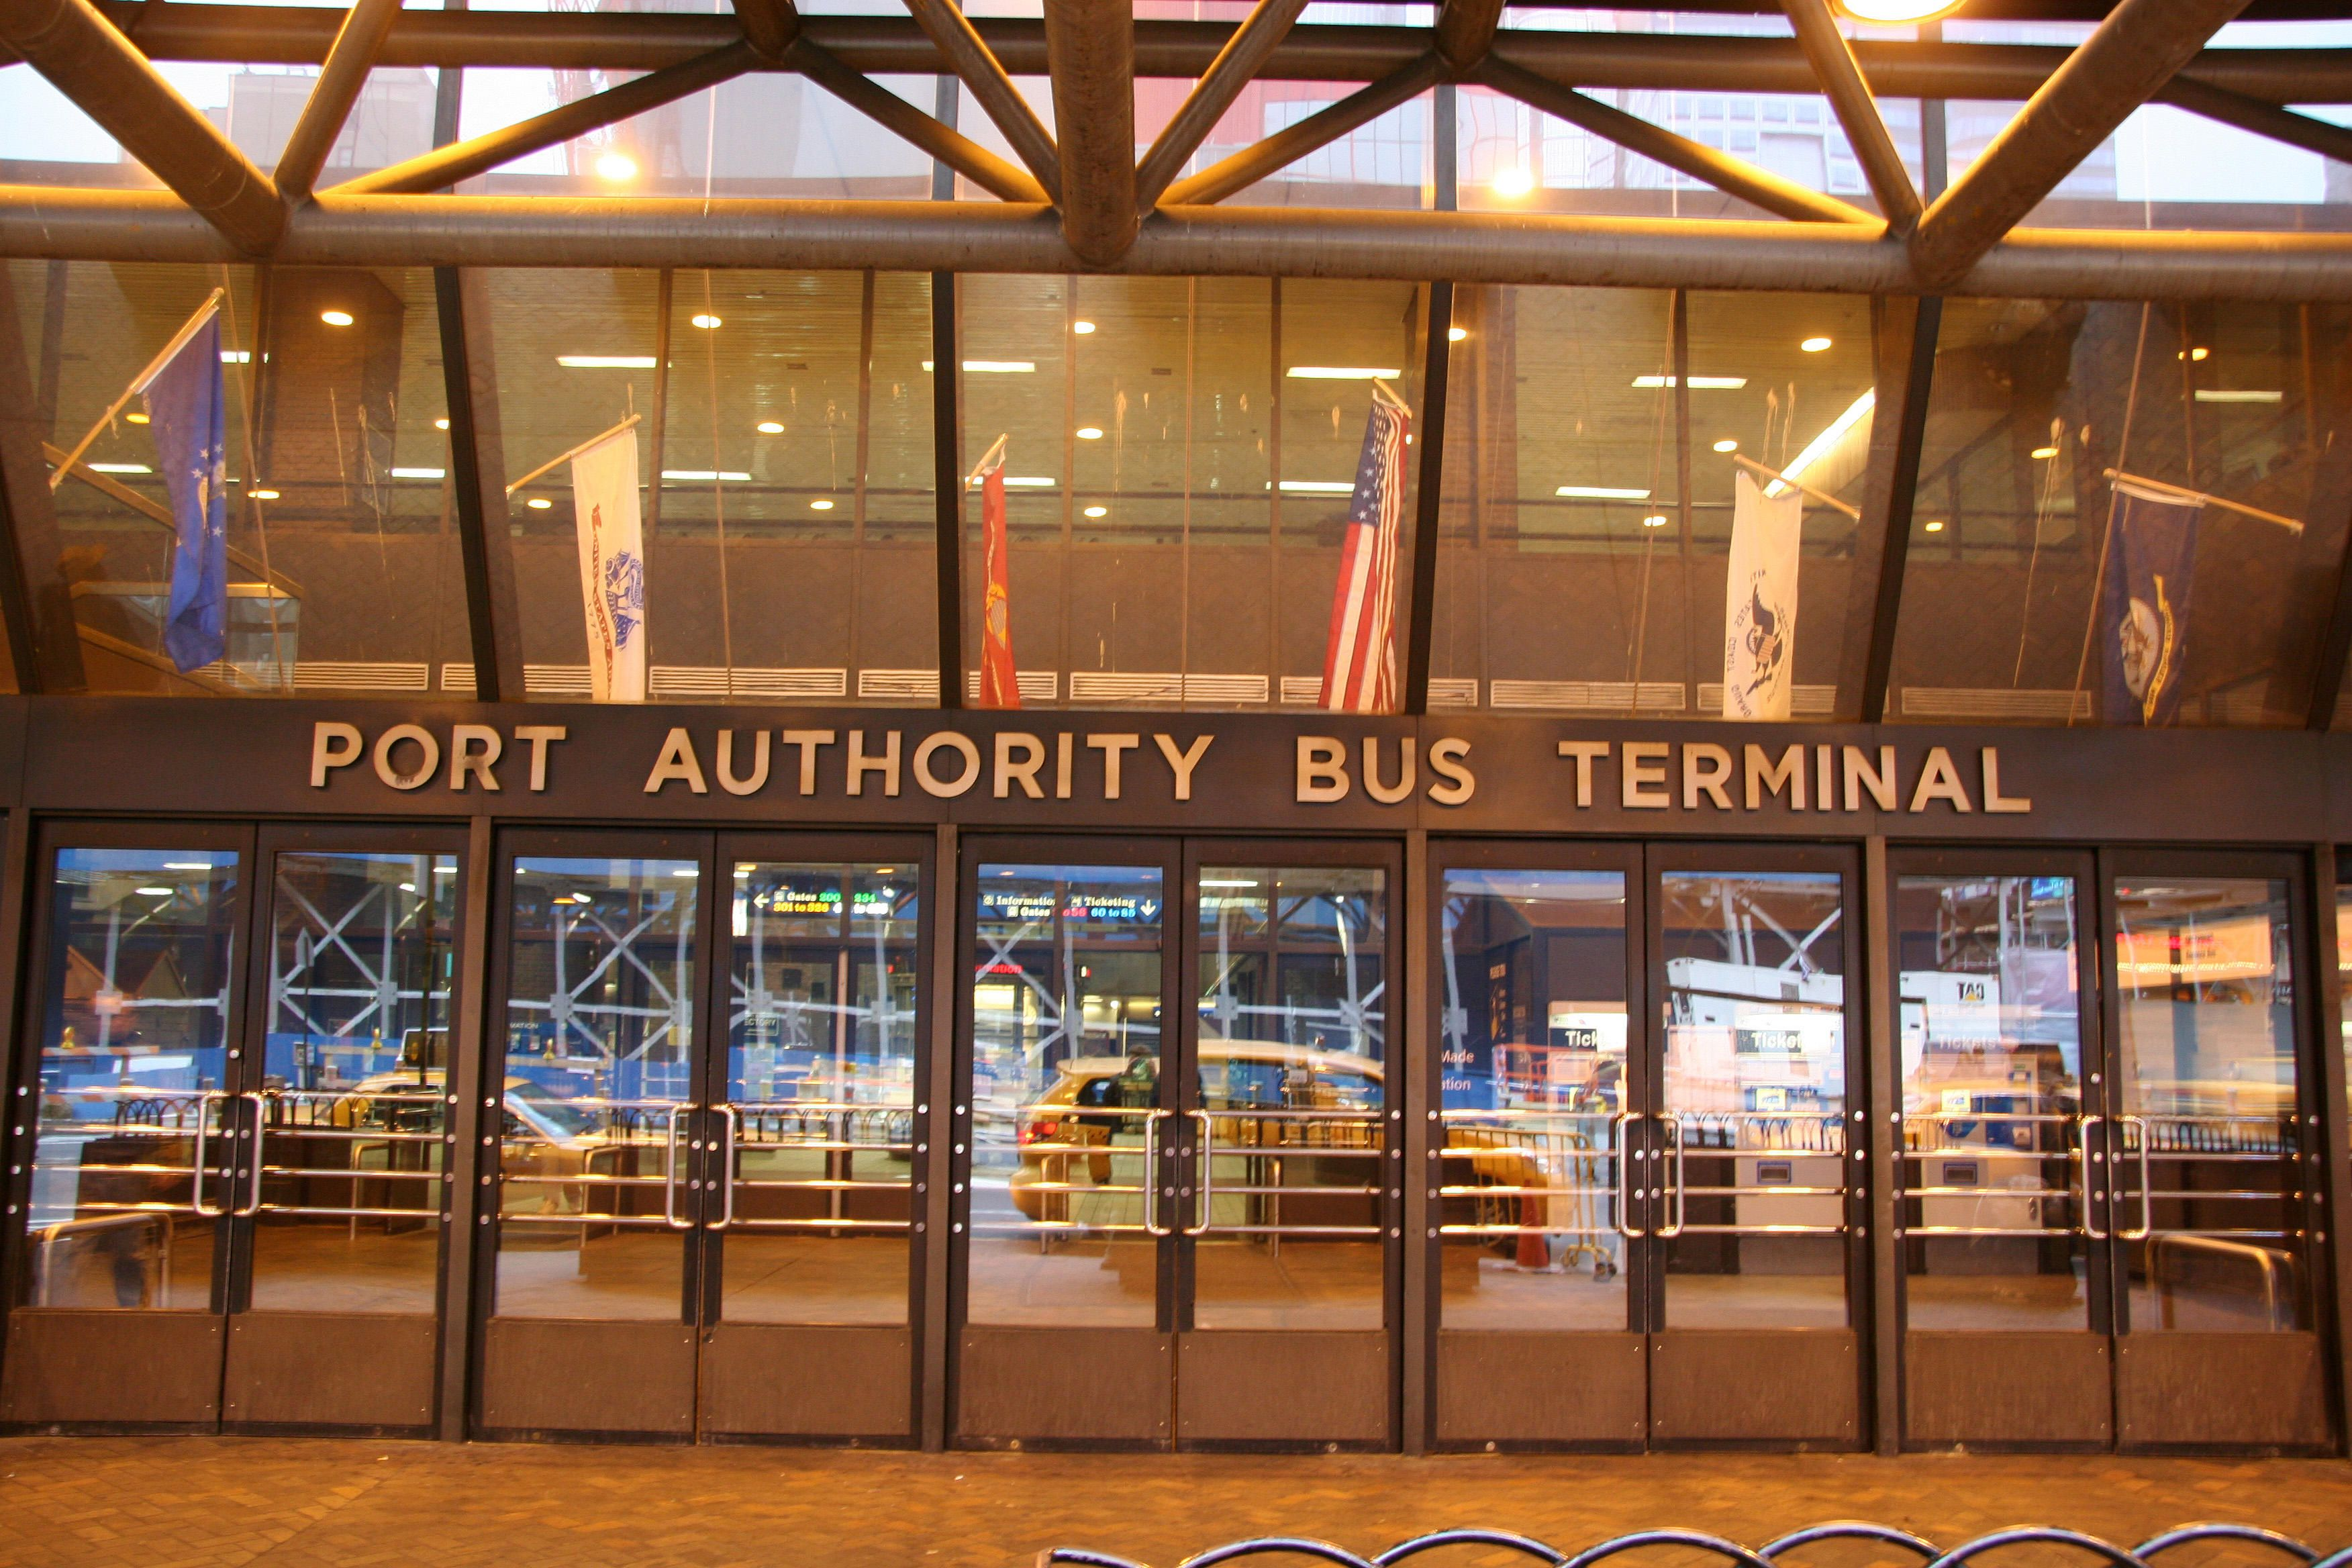 71c934bd850563789fb849a8376eb3c9 - Bus Fare From Port Authority To Jersey Gardens